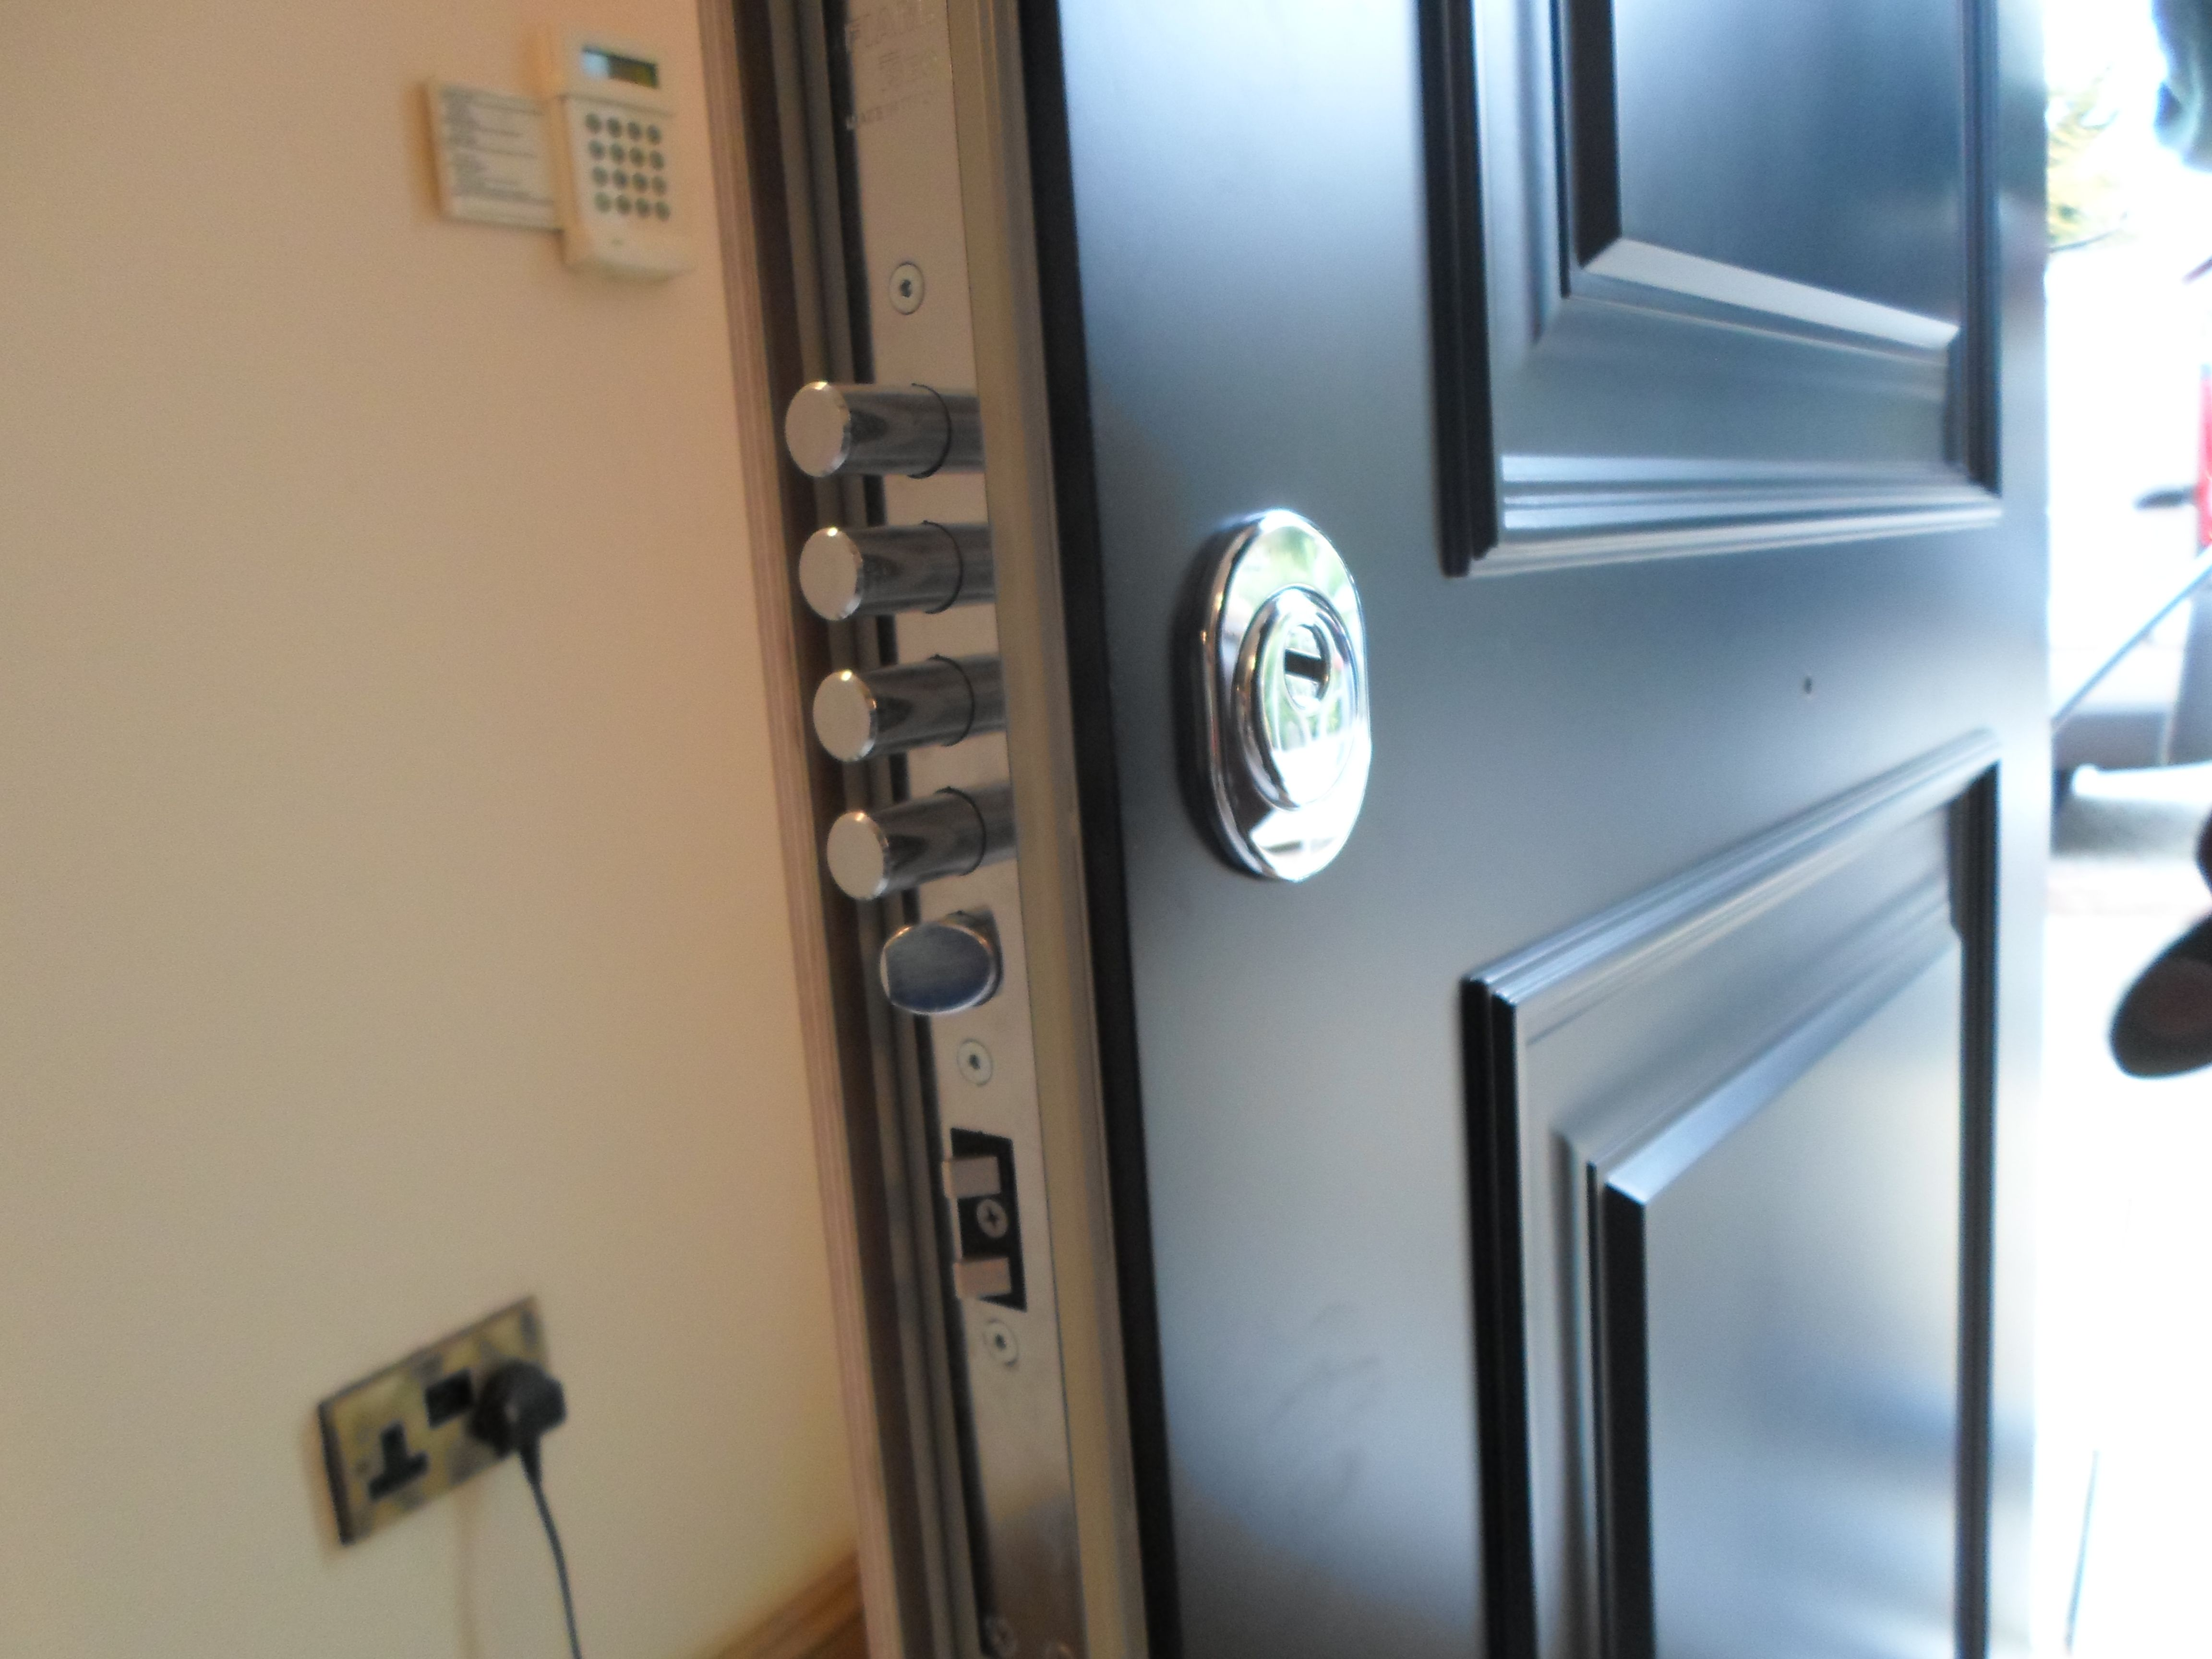 Newly Installed High Security Door With Fingerprint Recognition